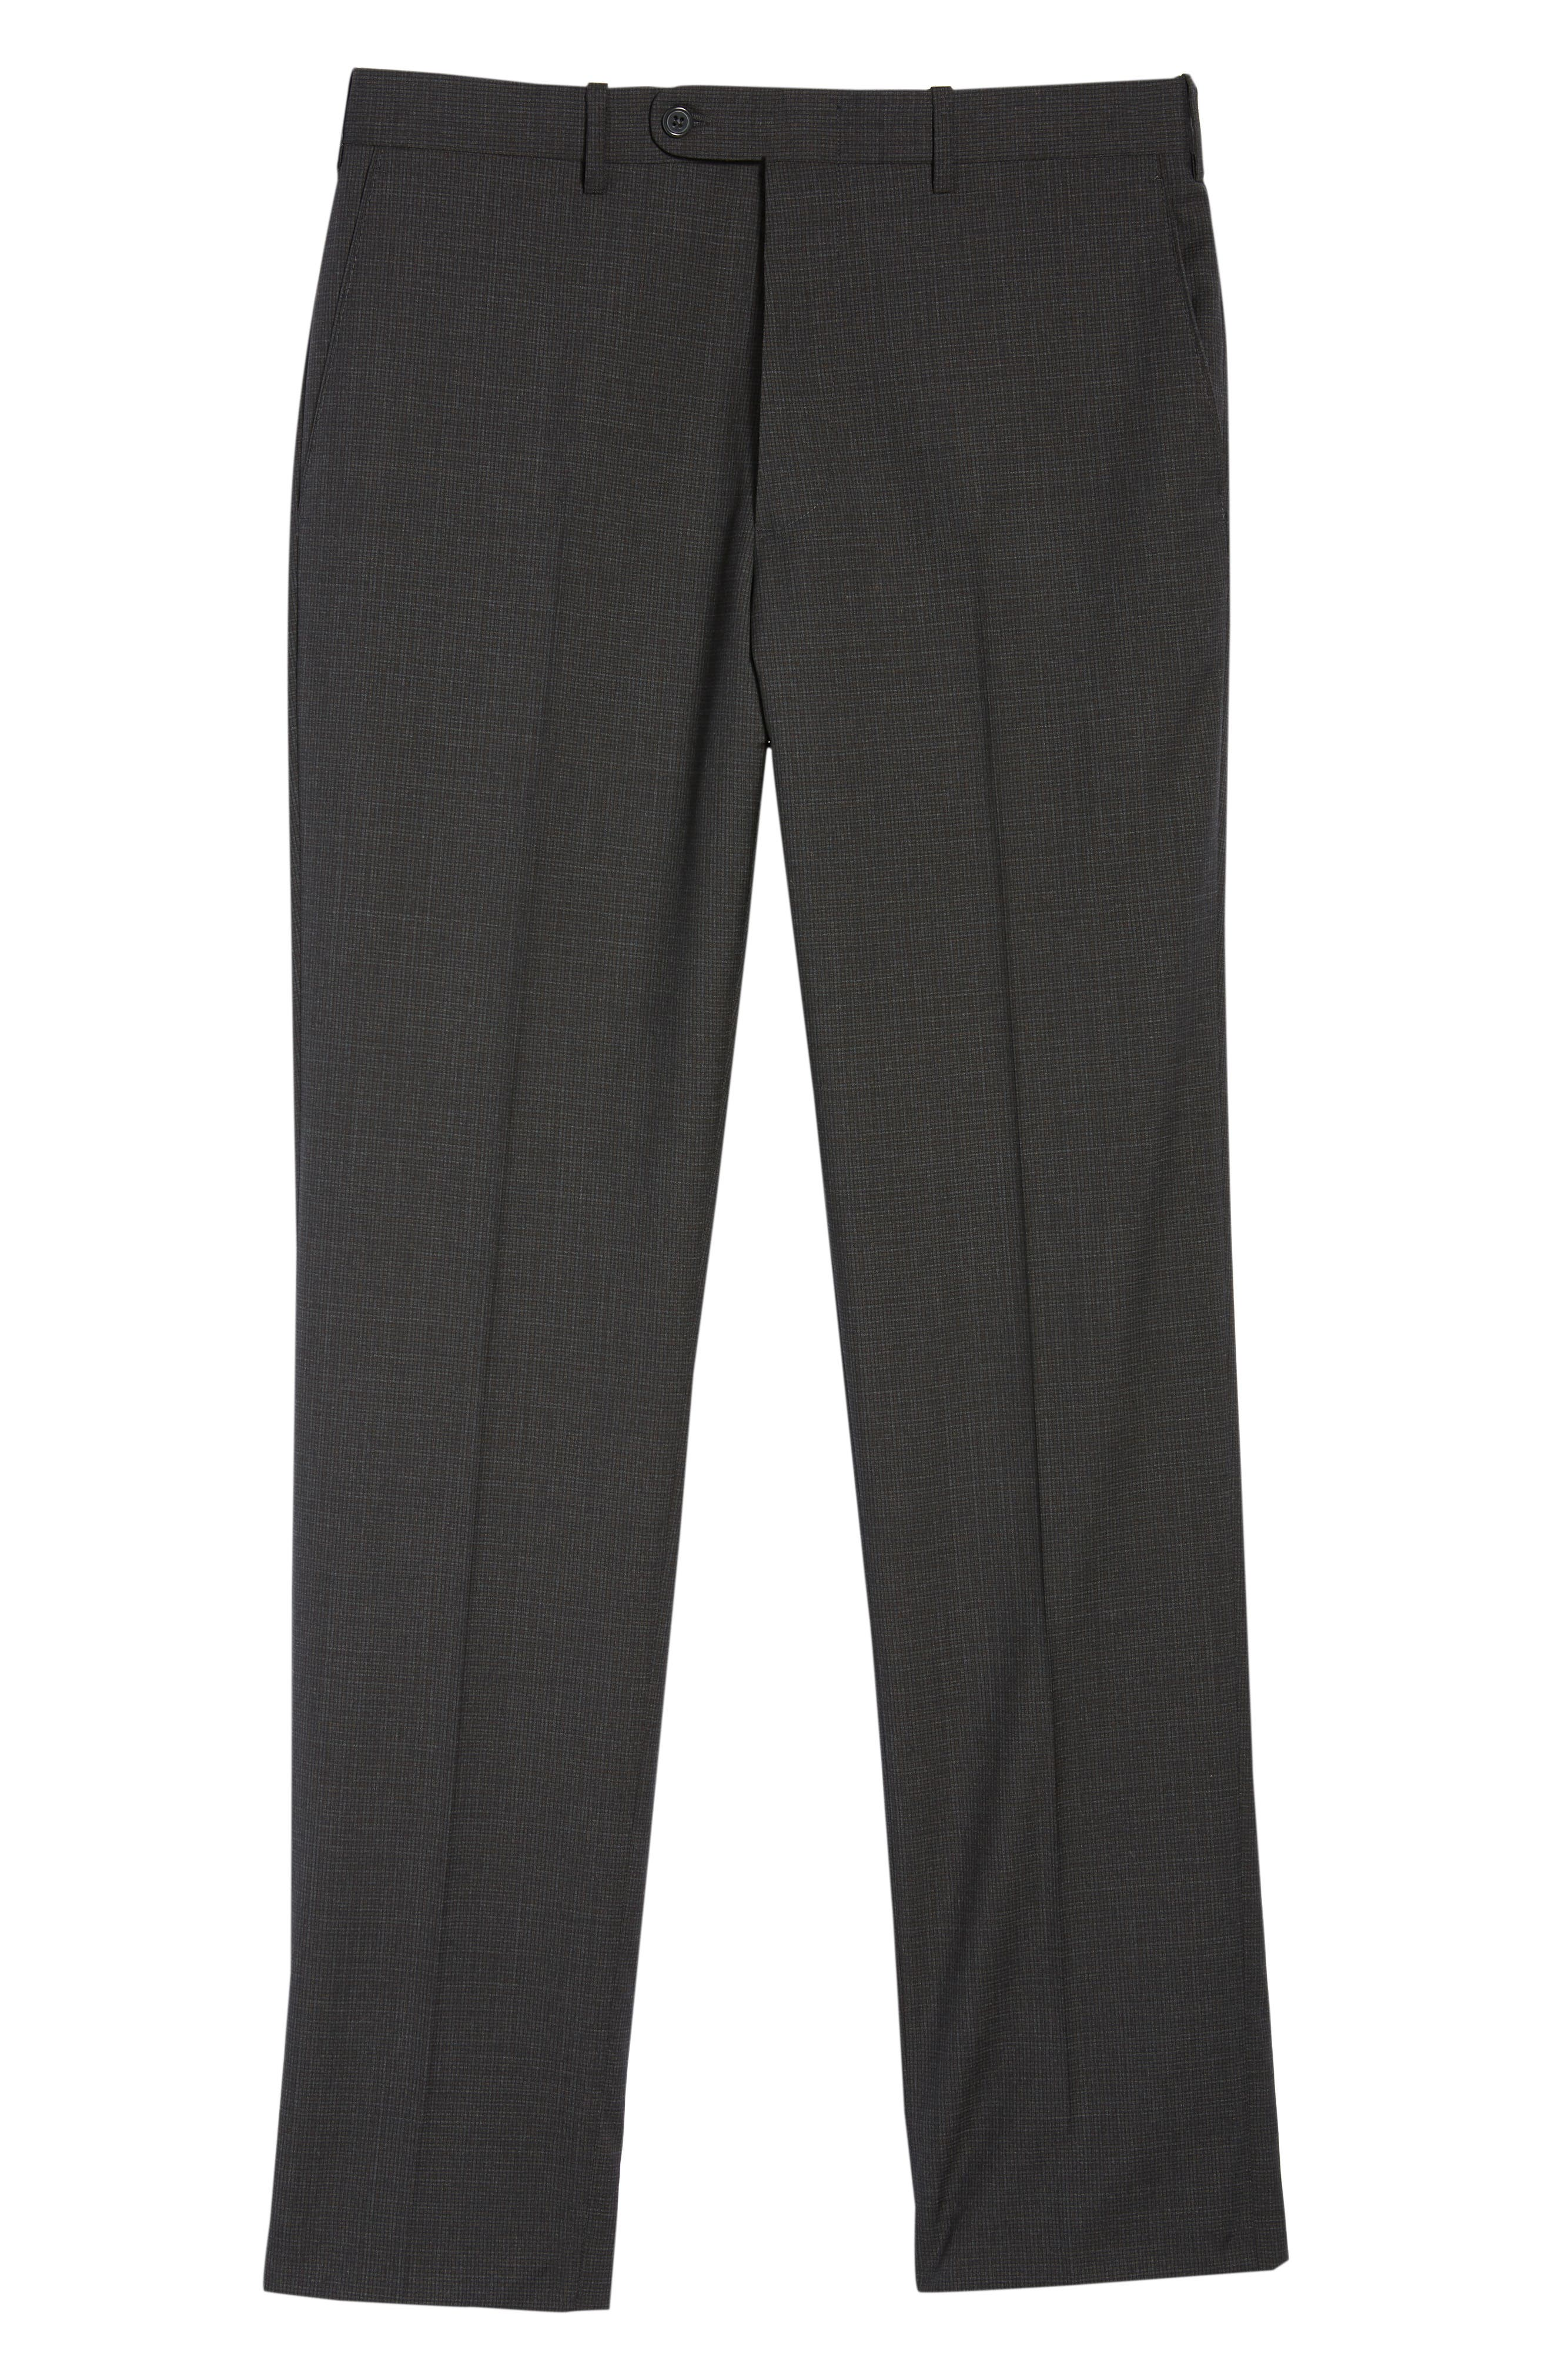 Torino Traditional Fit Flat Front Houndstooth Trousers,                             Alternate thumbnail 6, color,                             CHARCOAL